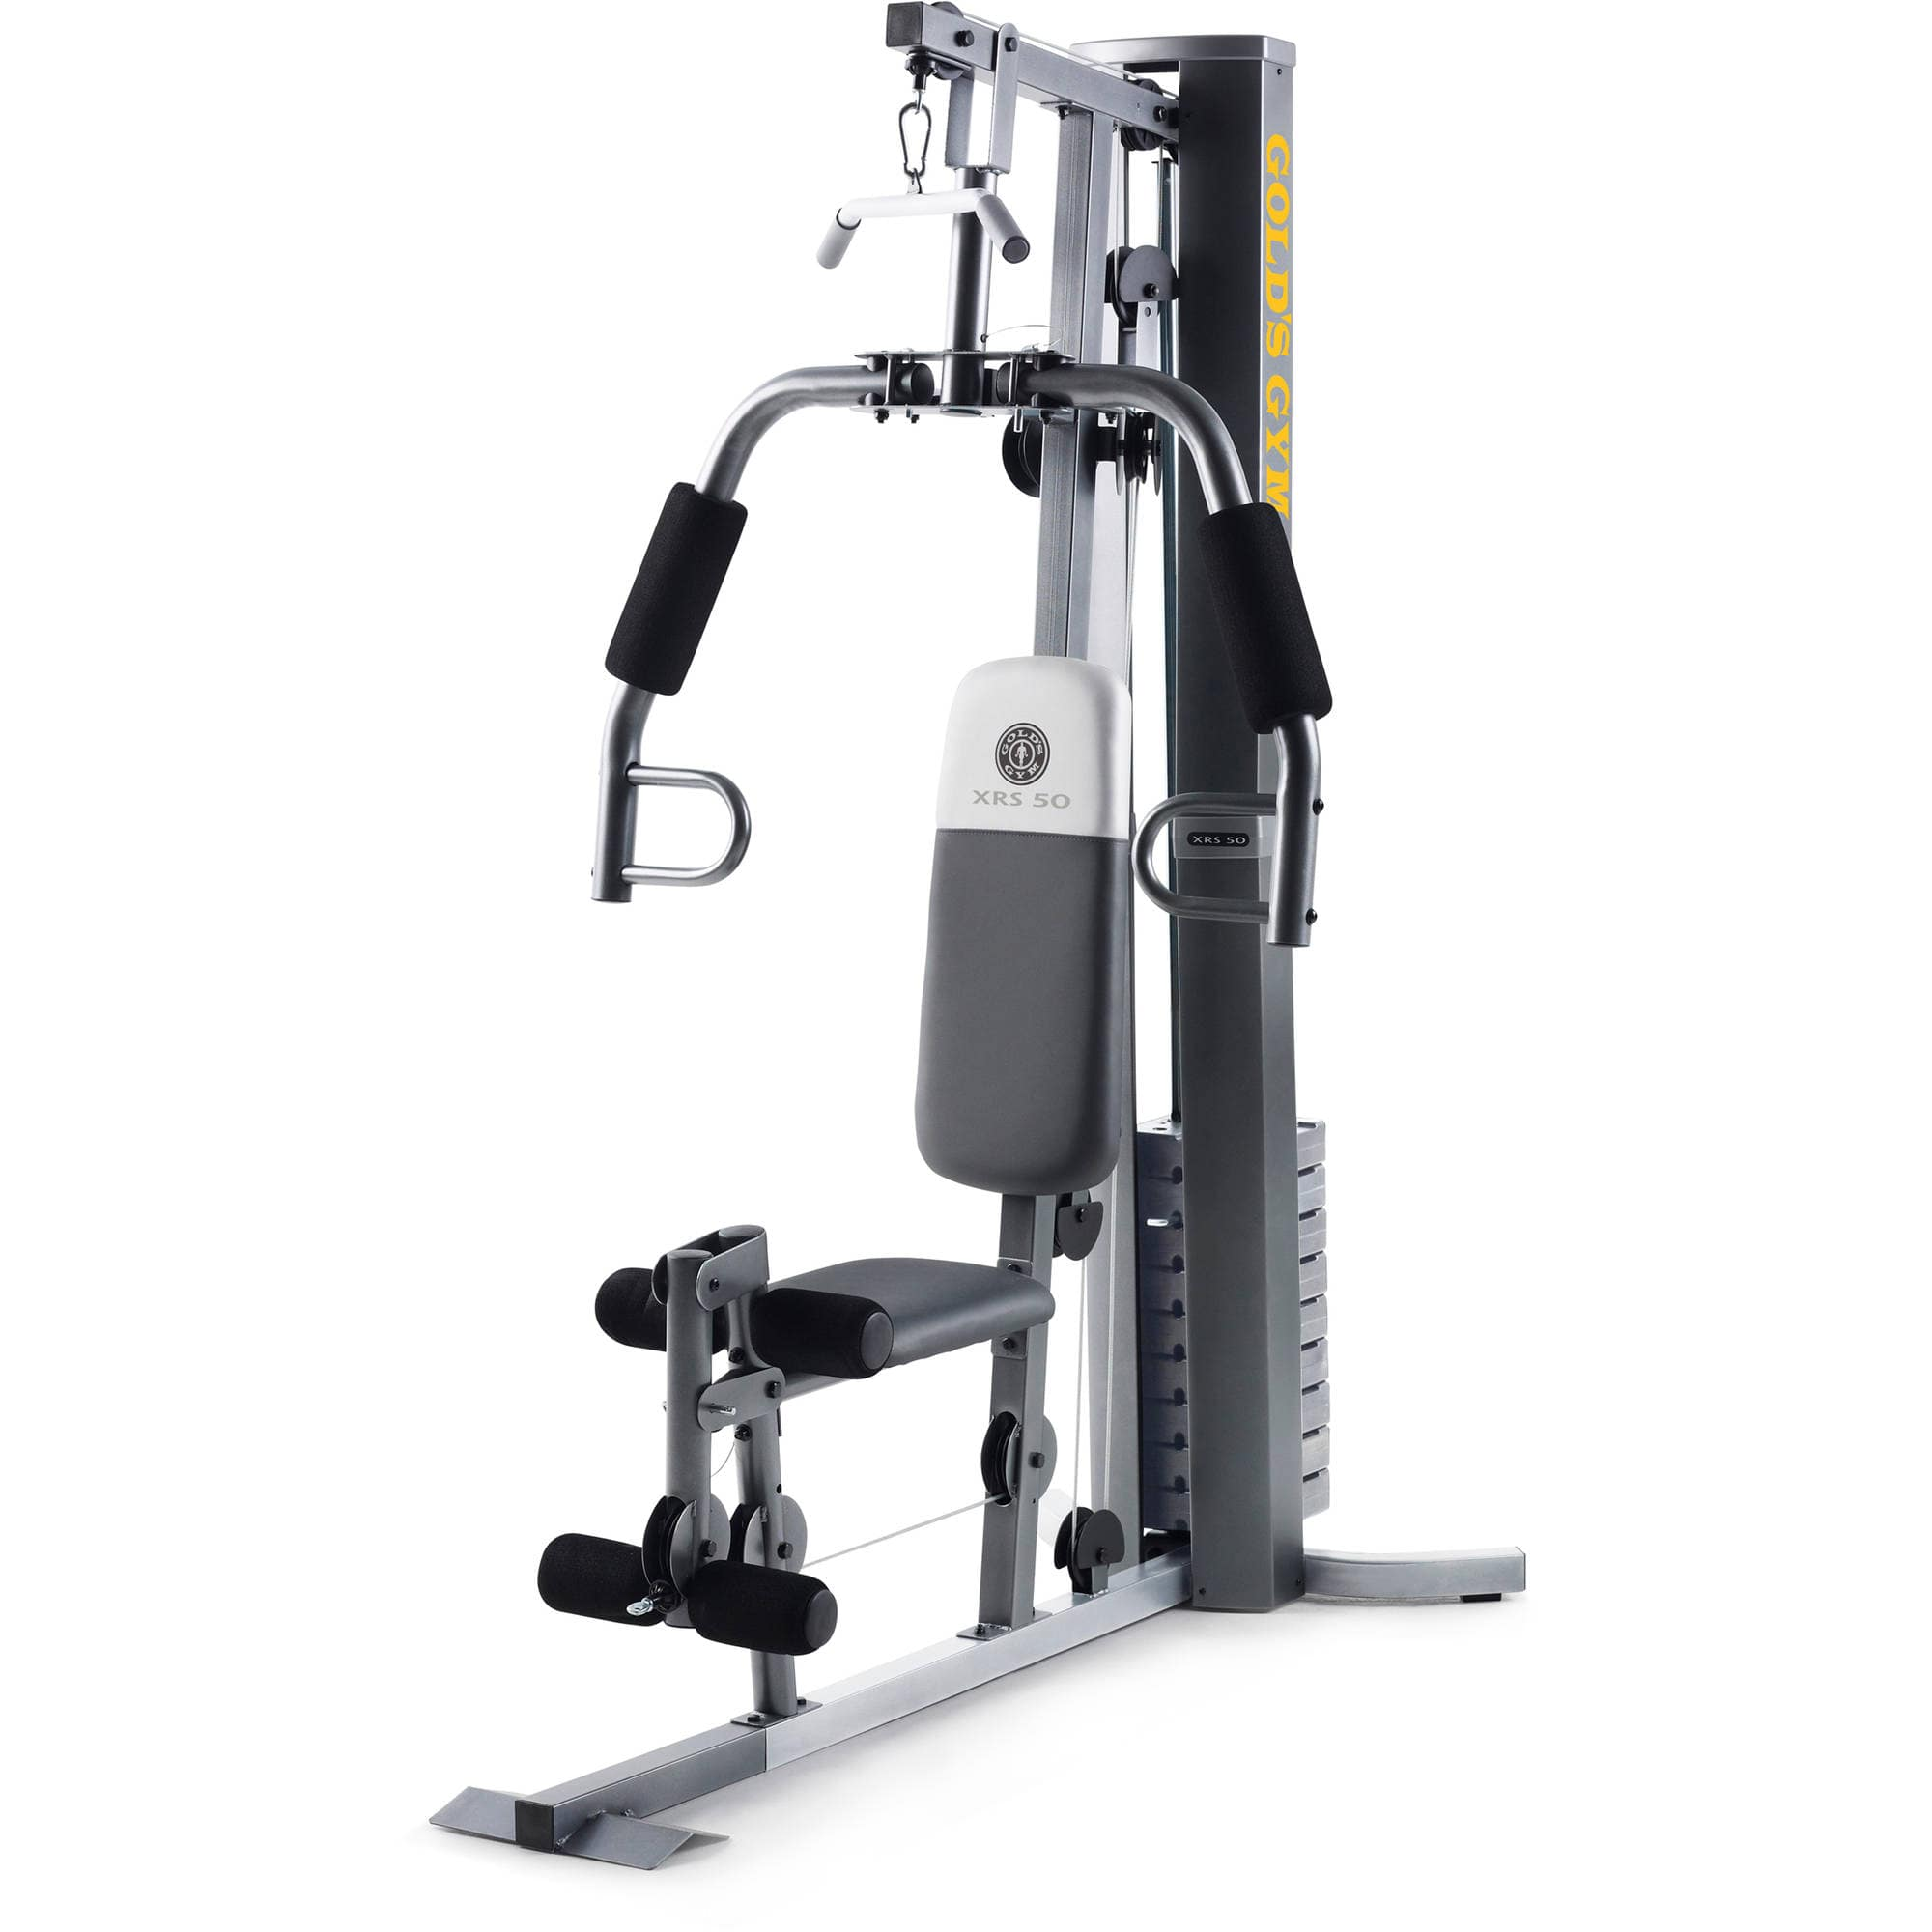 Home Exercise Equipment Price: Gold's Gym XRS 50 Home Gym $124 Or Less @ WalMart YMMV